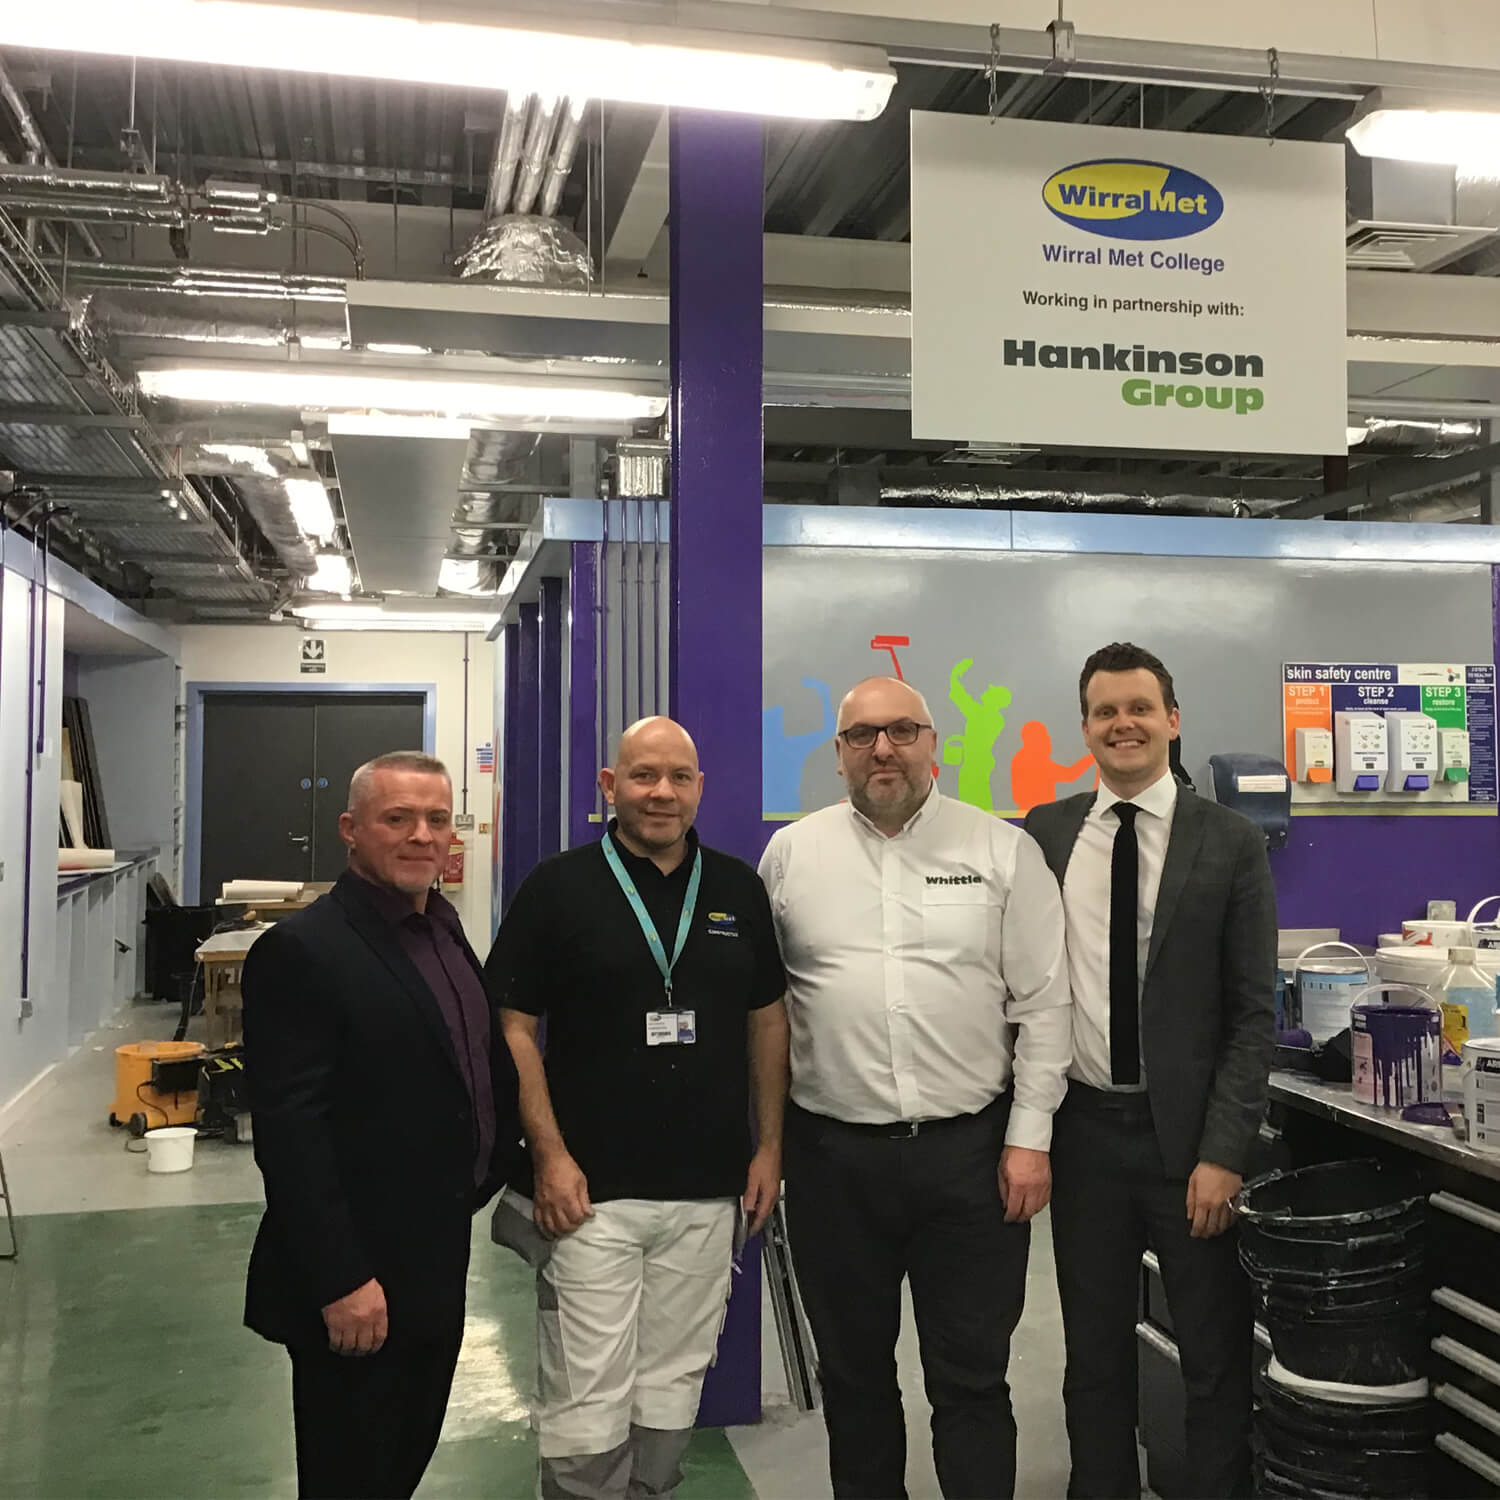 Four men stood in painting and decorating workshop at Wirral Met College